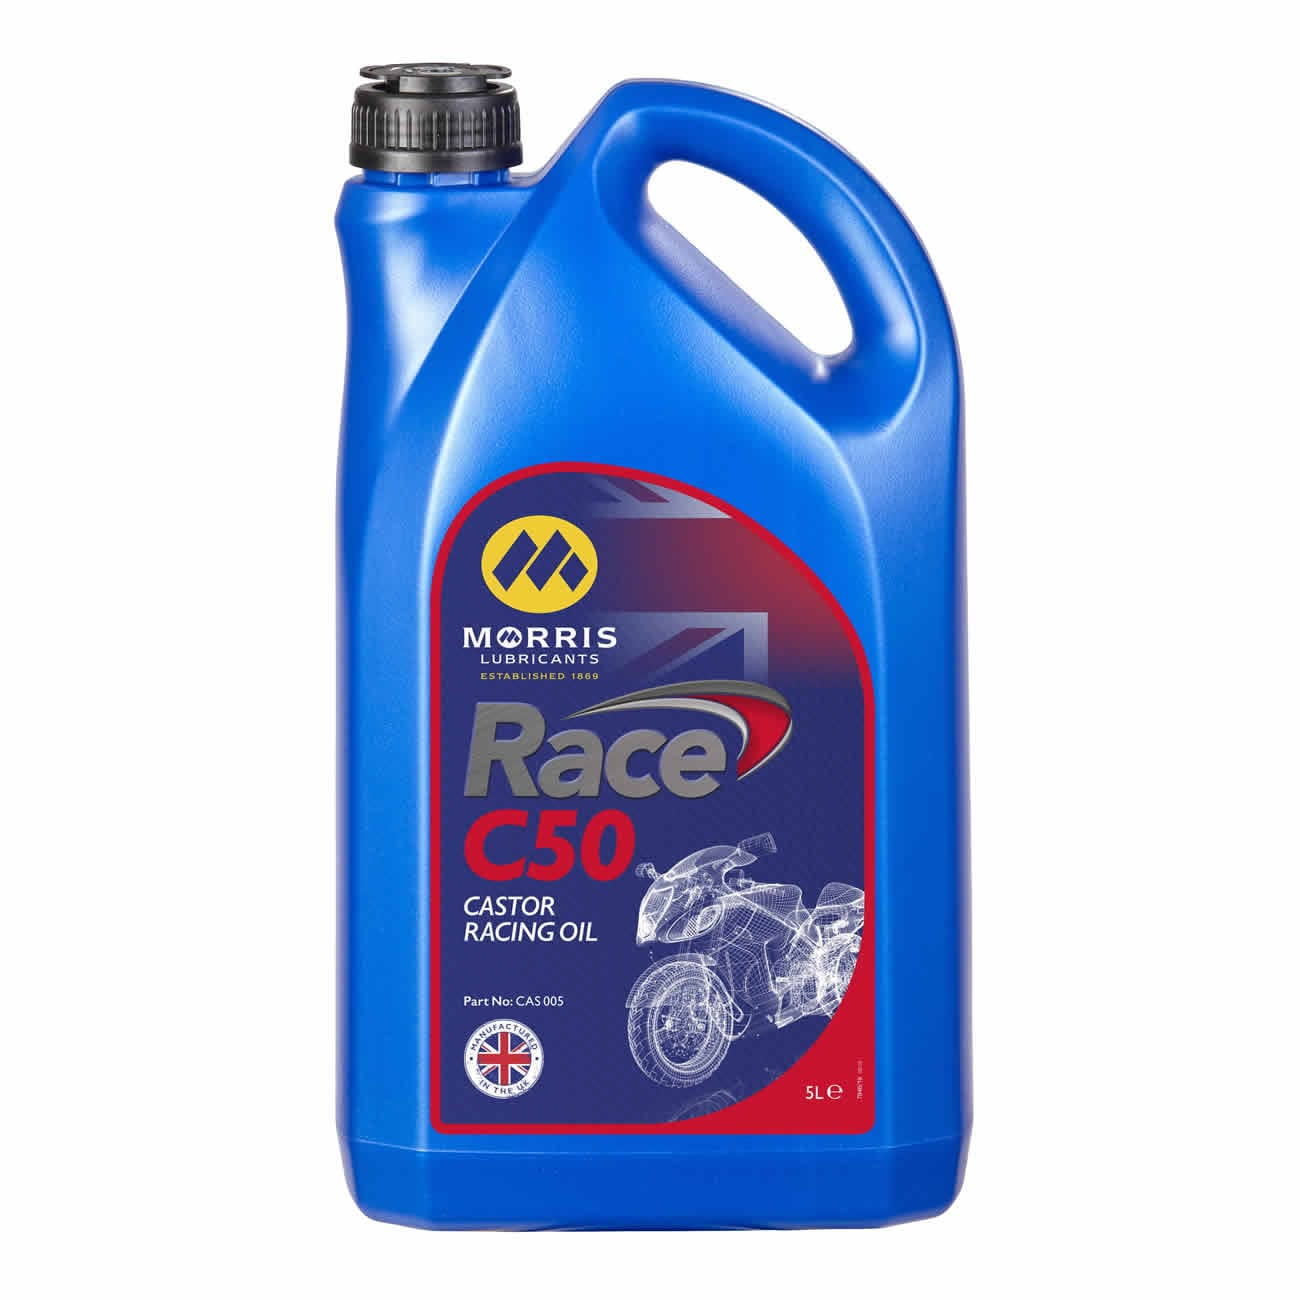 Race C50 (Formerly MLR 50 Castor Racing Oil)